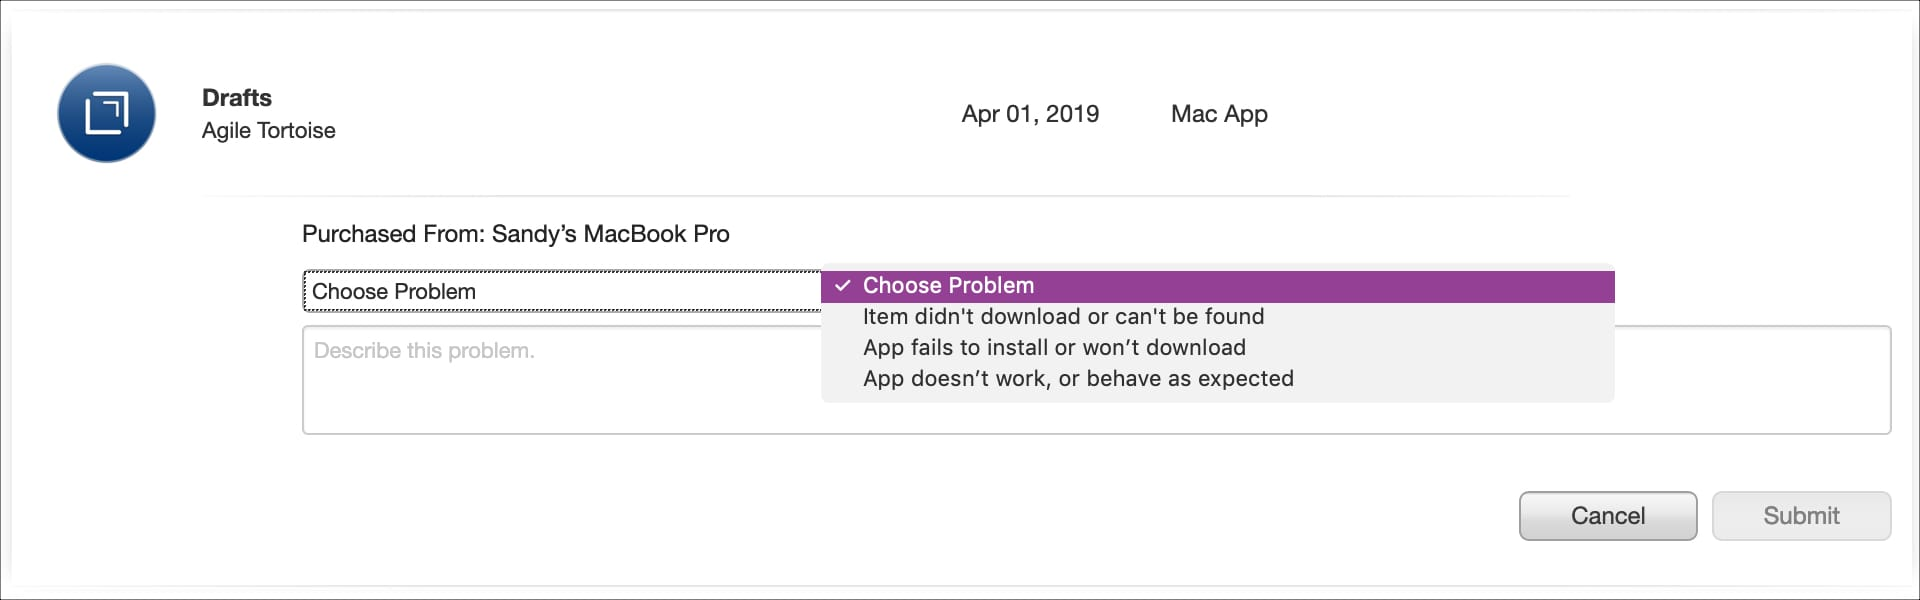 Choose Problem Report a Problem Website Request Refund Mac app